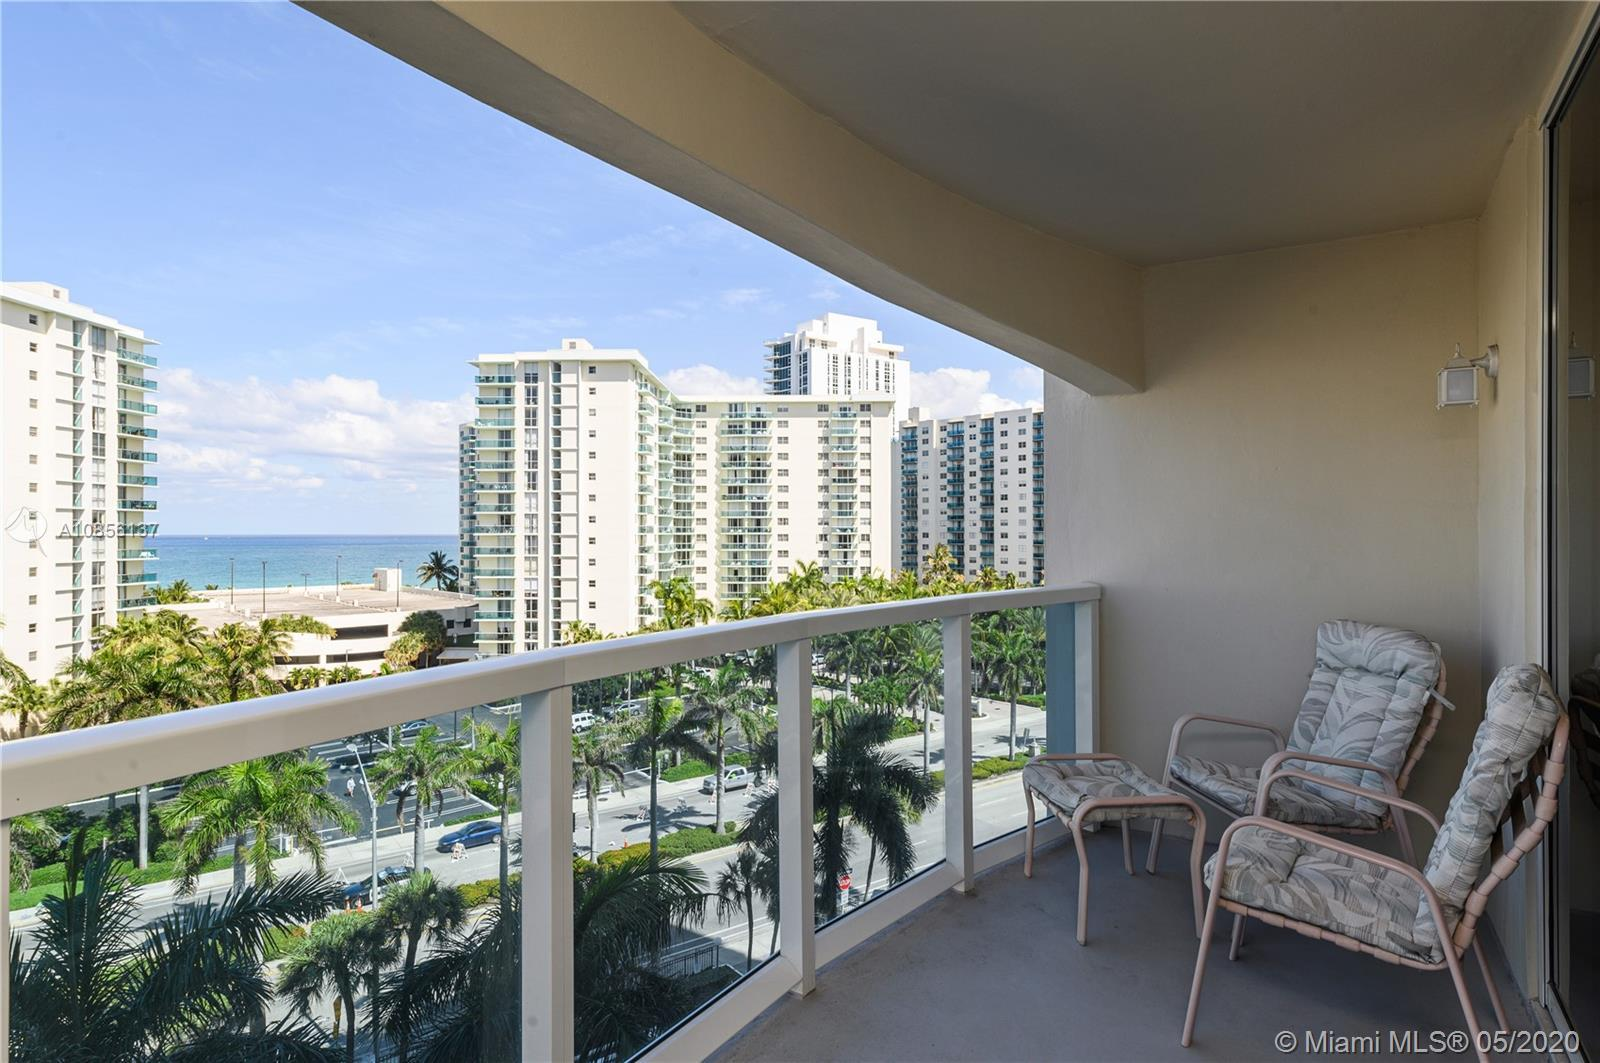 FULLY RENOVATED 2 BEDROOM 2 BATHROOM CONDO WITH PARTIAL OCEAN VIEWS IN THE INTRACOASTAL-FRONT RESORT